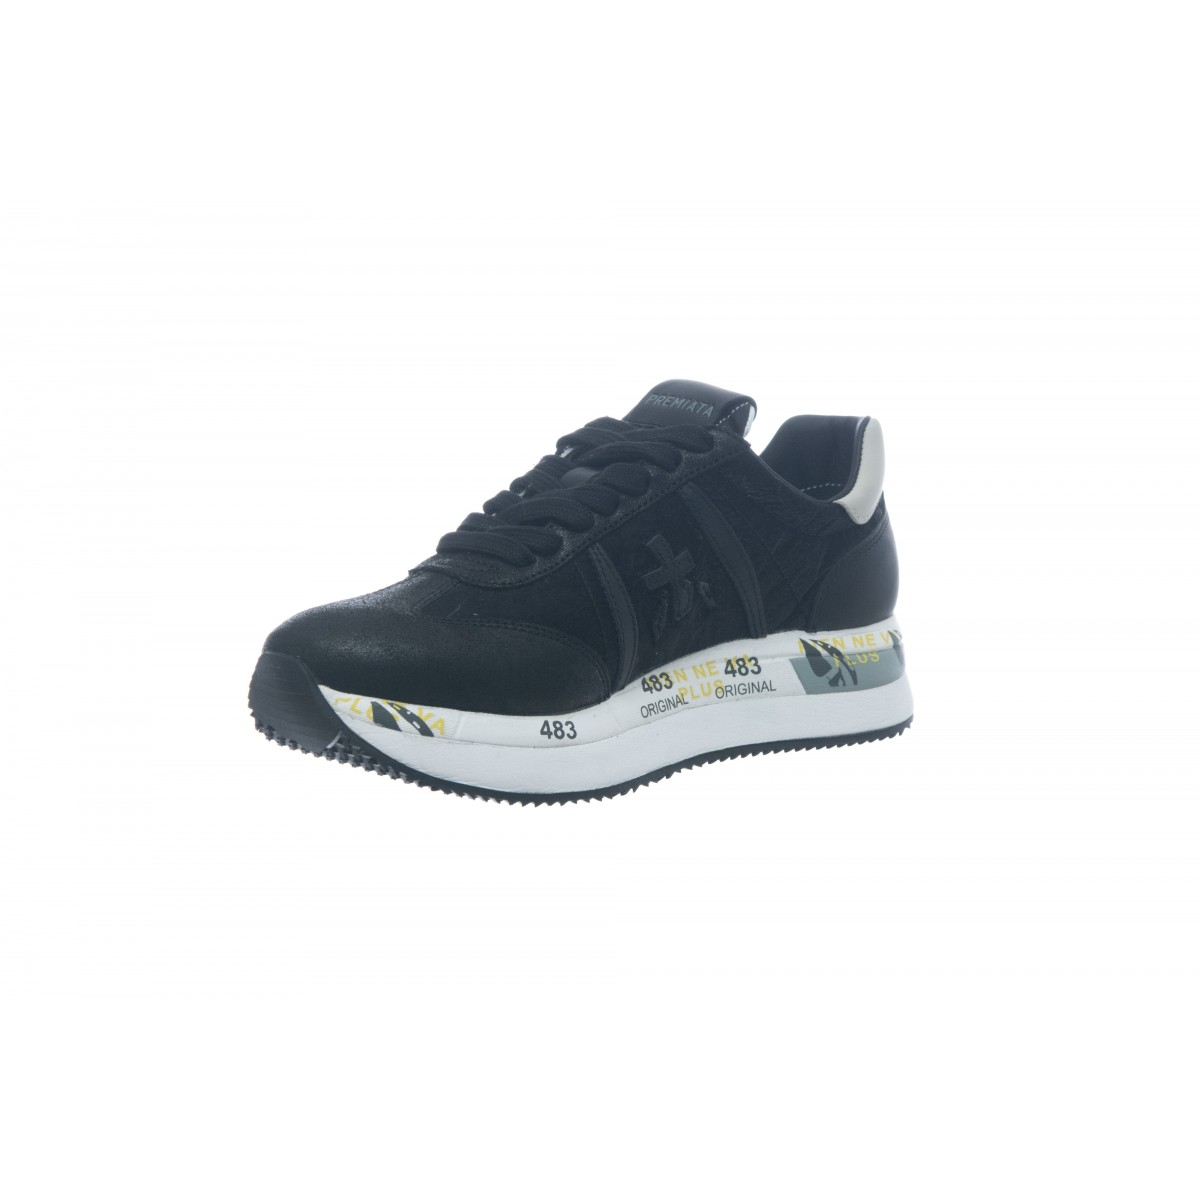 Sneakers Woman  - Conny 4821